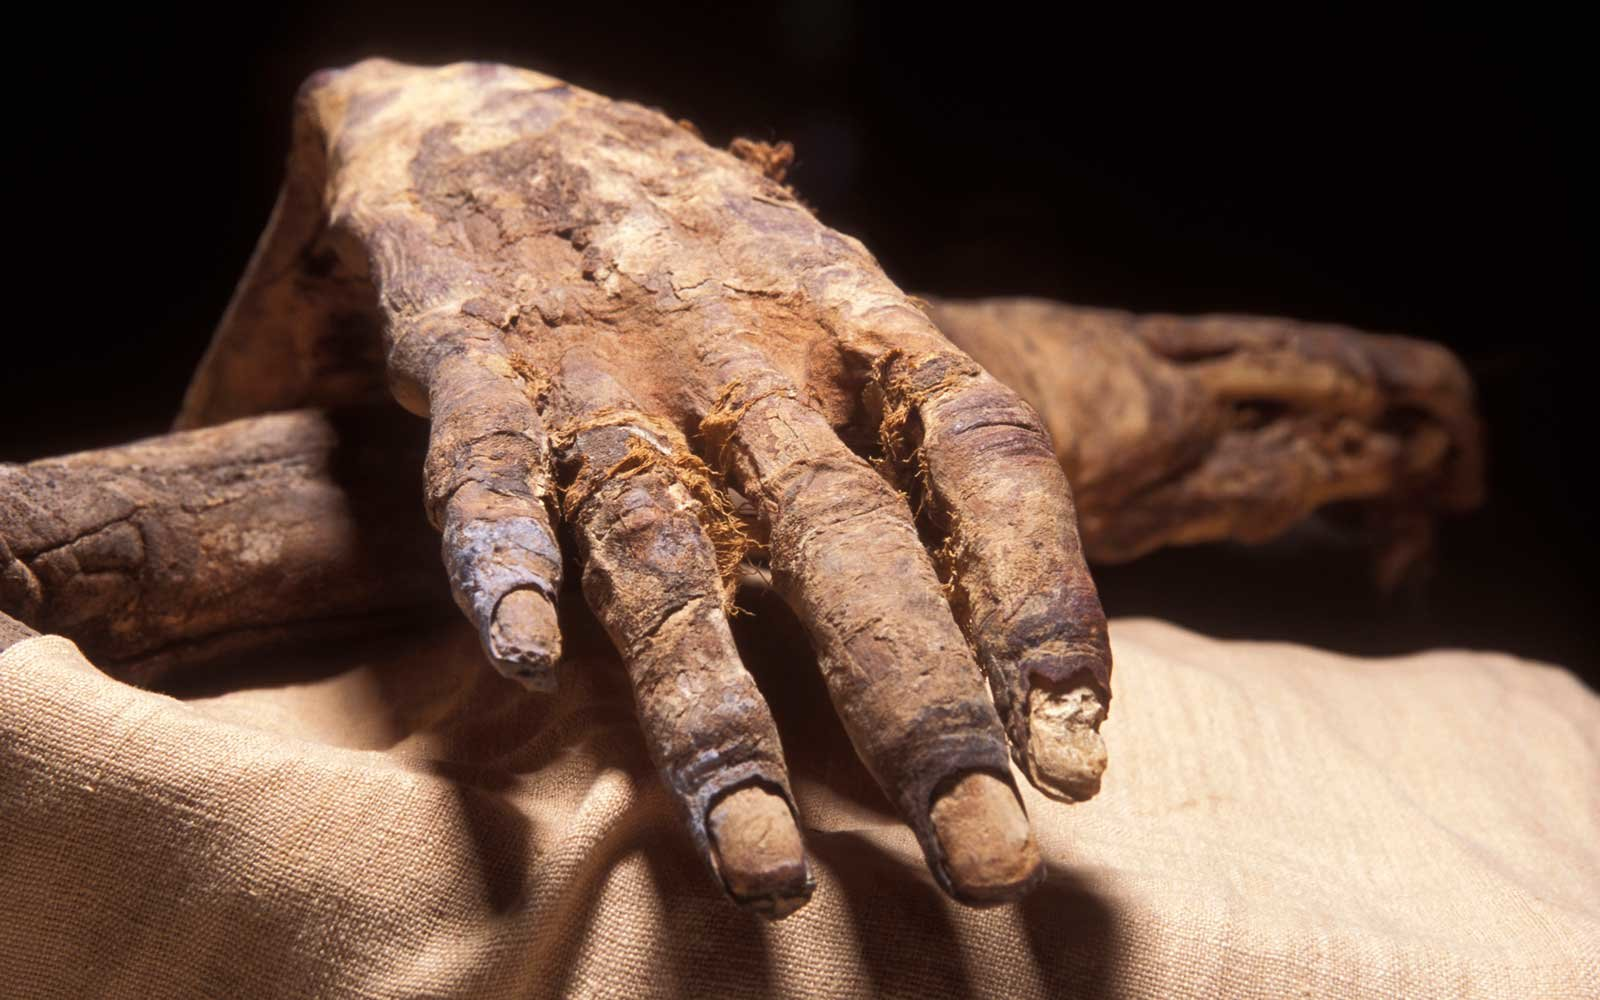 Mummy in Egypt